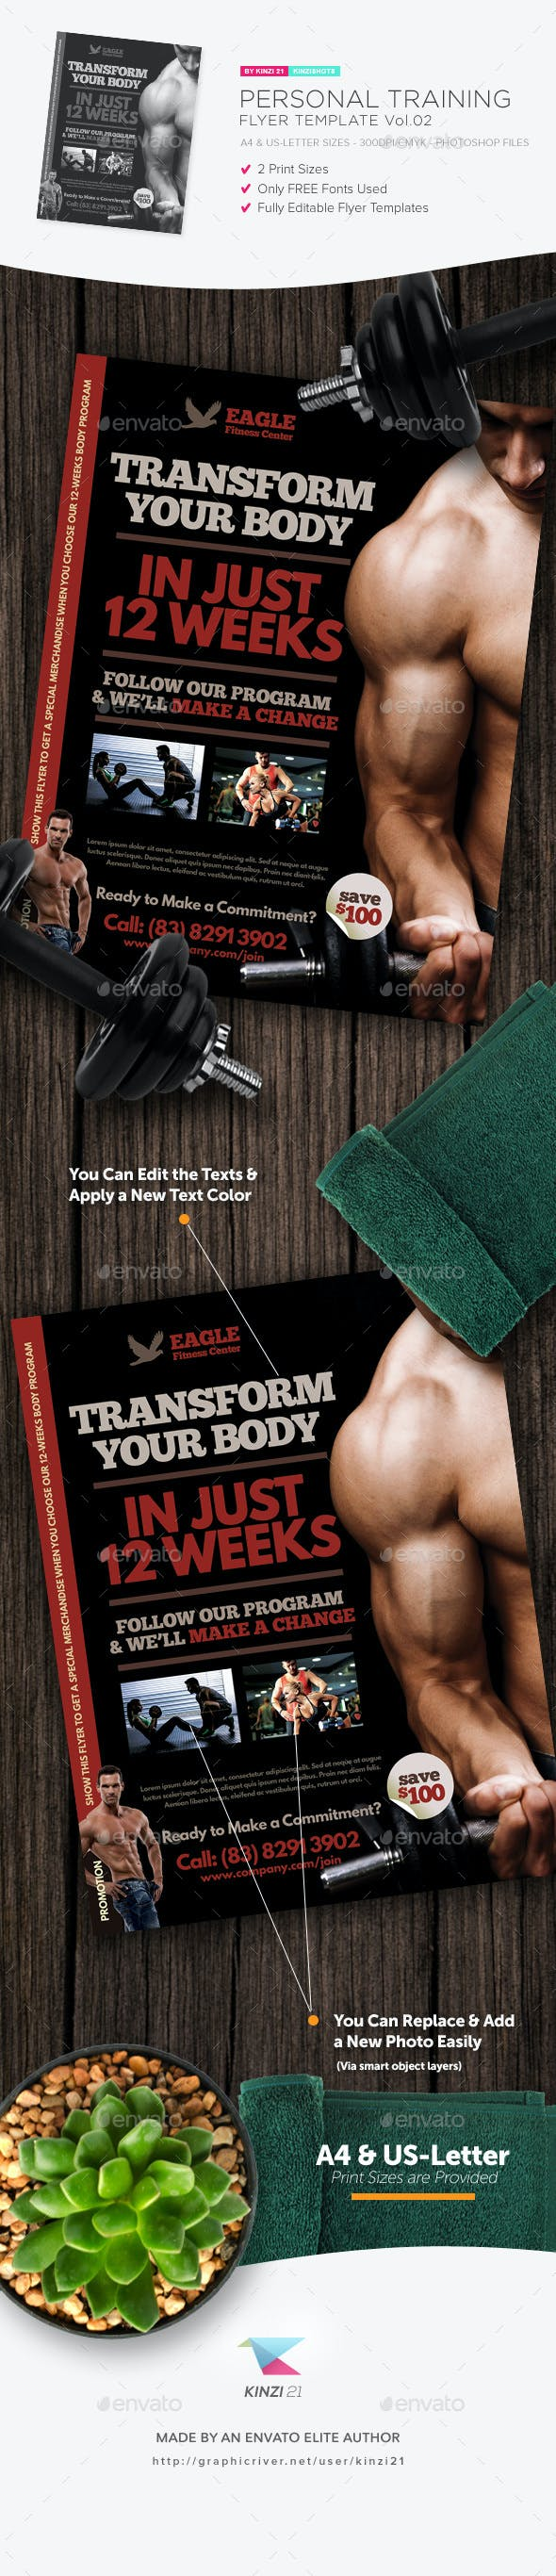 personal training flyer template v 02 by kinzishots graphicriver